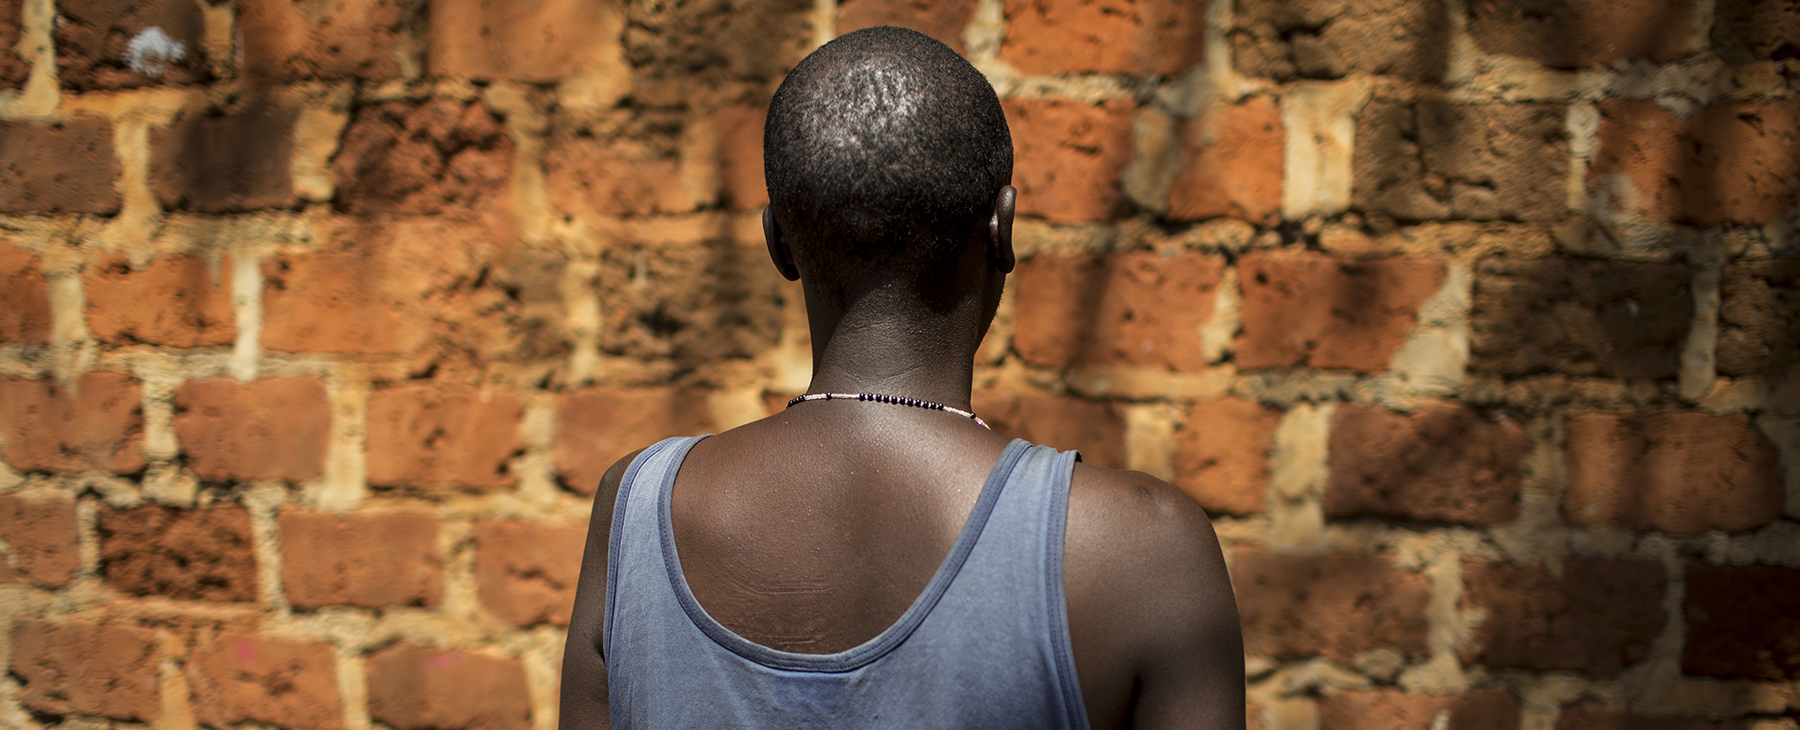 In Burundi, relatives of the disappeared are also victimized